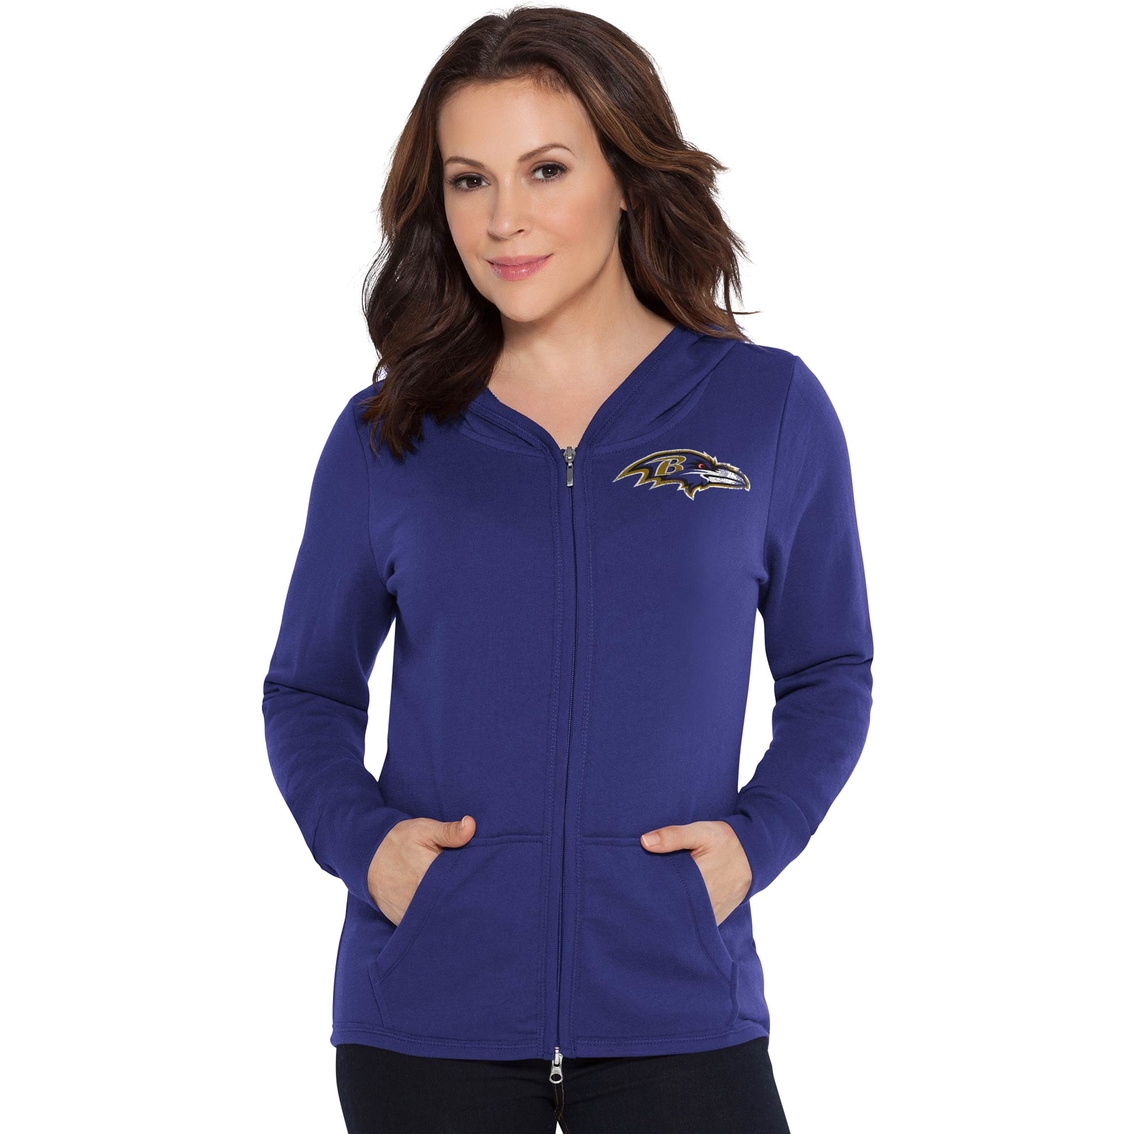 Touch By Alyssa Milano Nfl Baltimore Ravens Women s Tackle Hoodie ... 5eb7cdf8e5